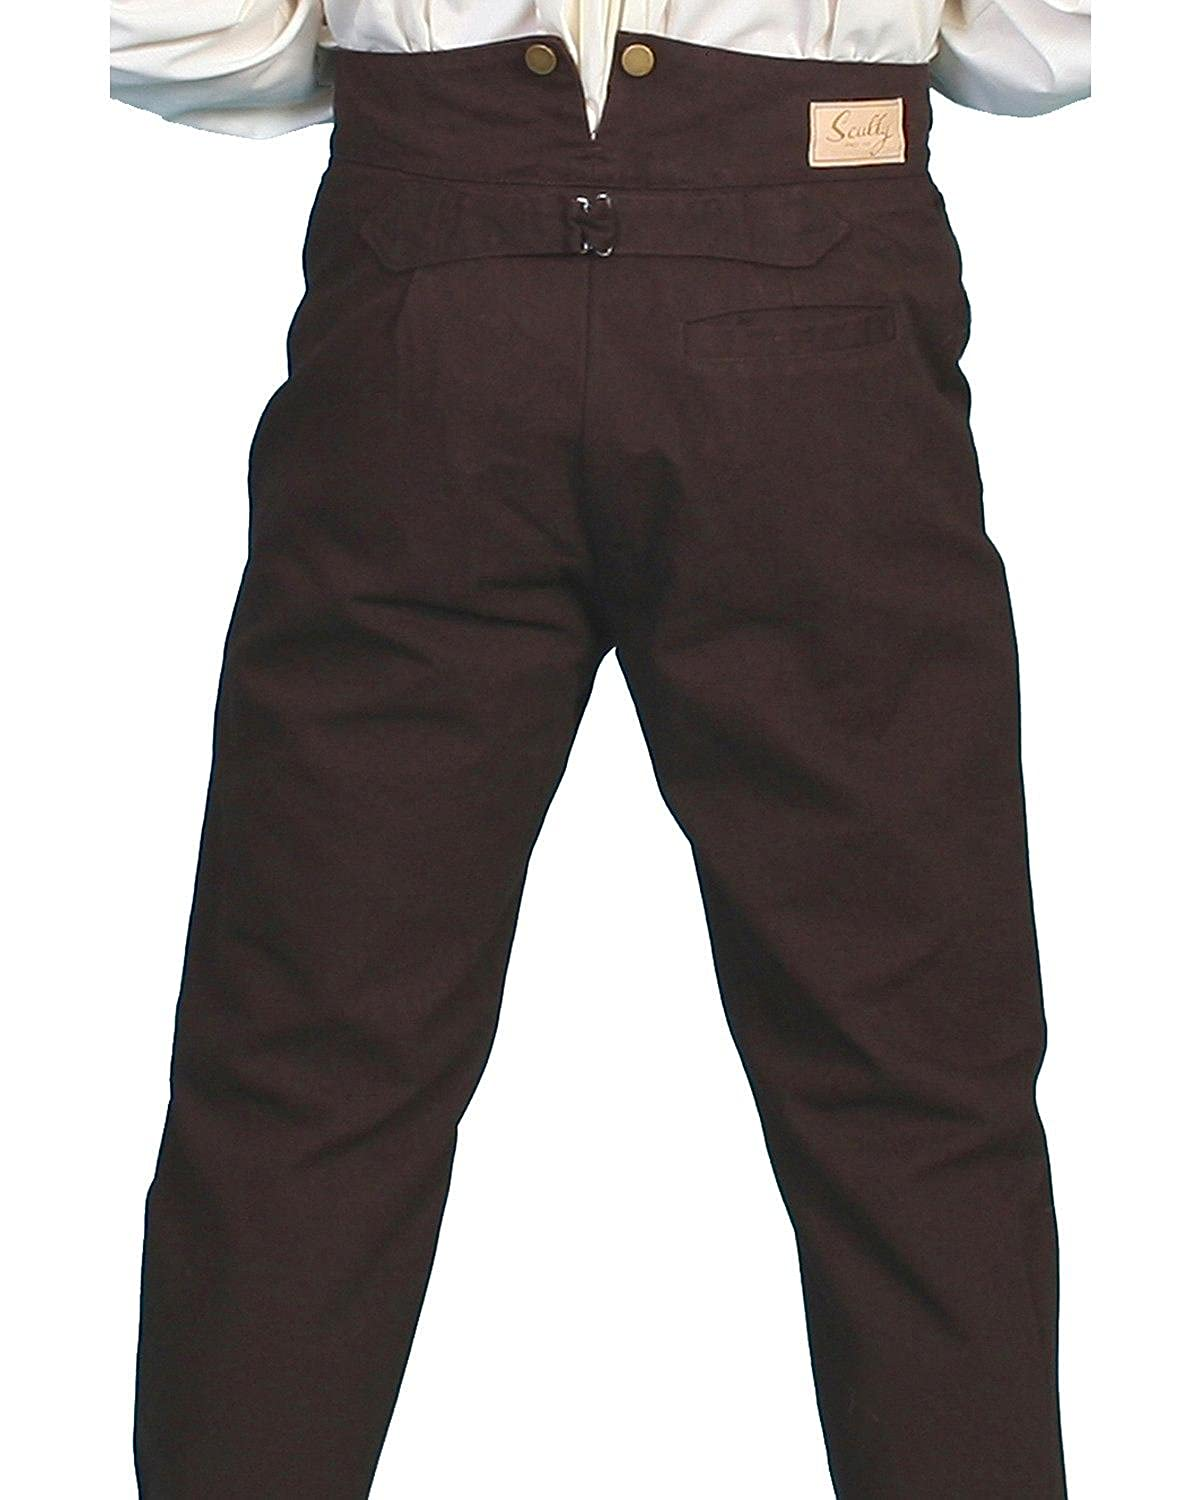 1920s Men's Pants, Trousers, Plus Fours, Knickers Scully Rangewear Mens Rangewear Canvas Pants $51.90 AT vintagedancer.com